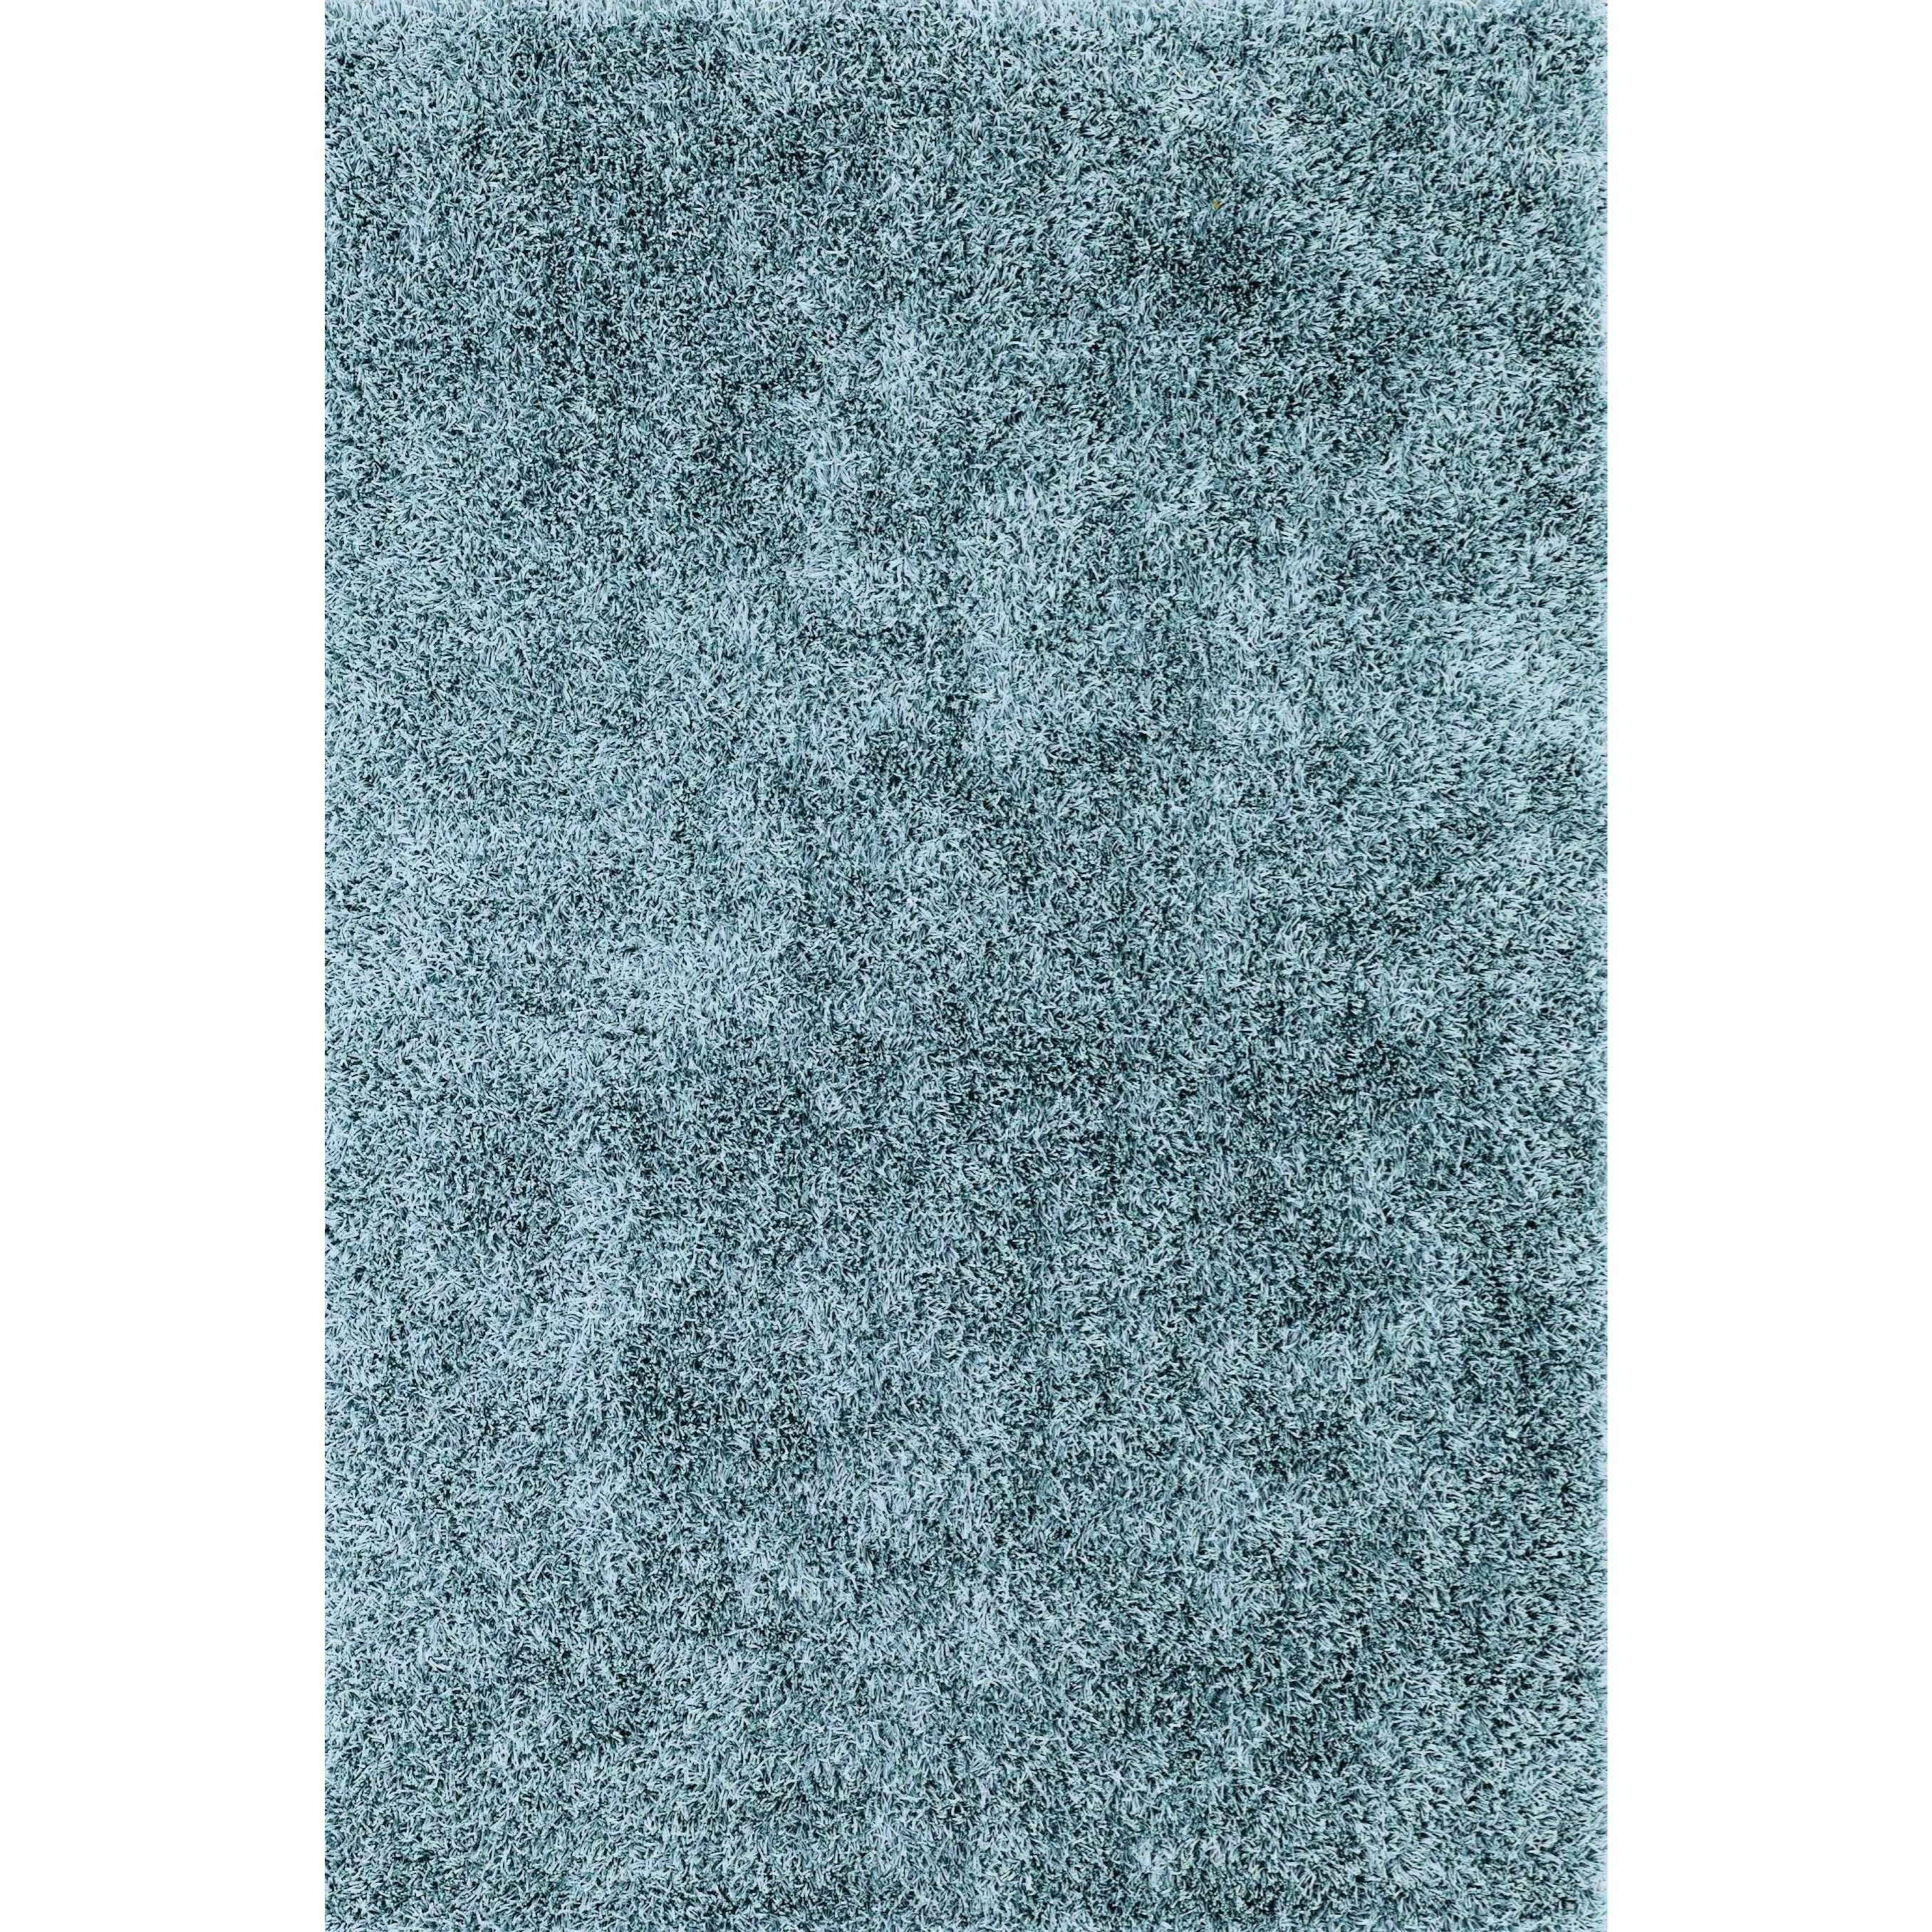 """Illusions Sky Blue 3'6""""X5'6"""" Rug by Dalyn at Sadler's Home Furnishings"""